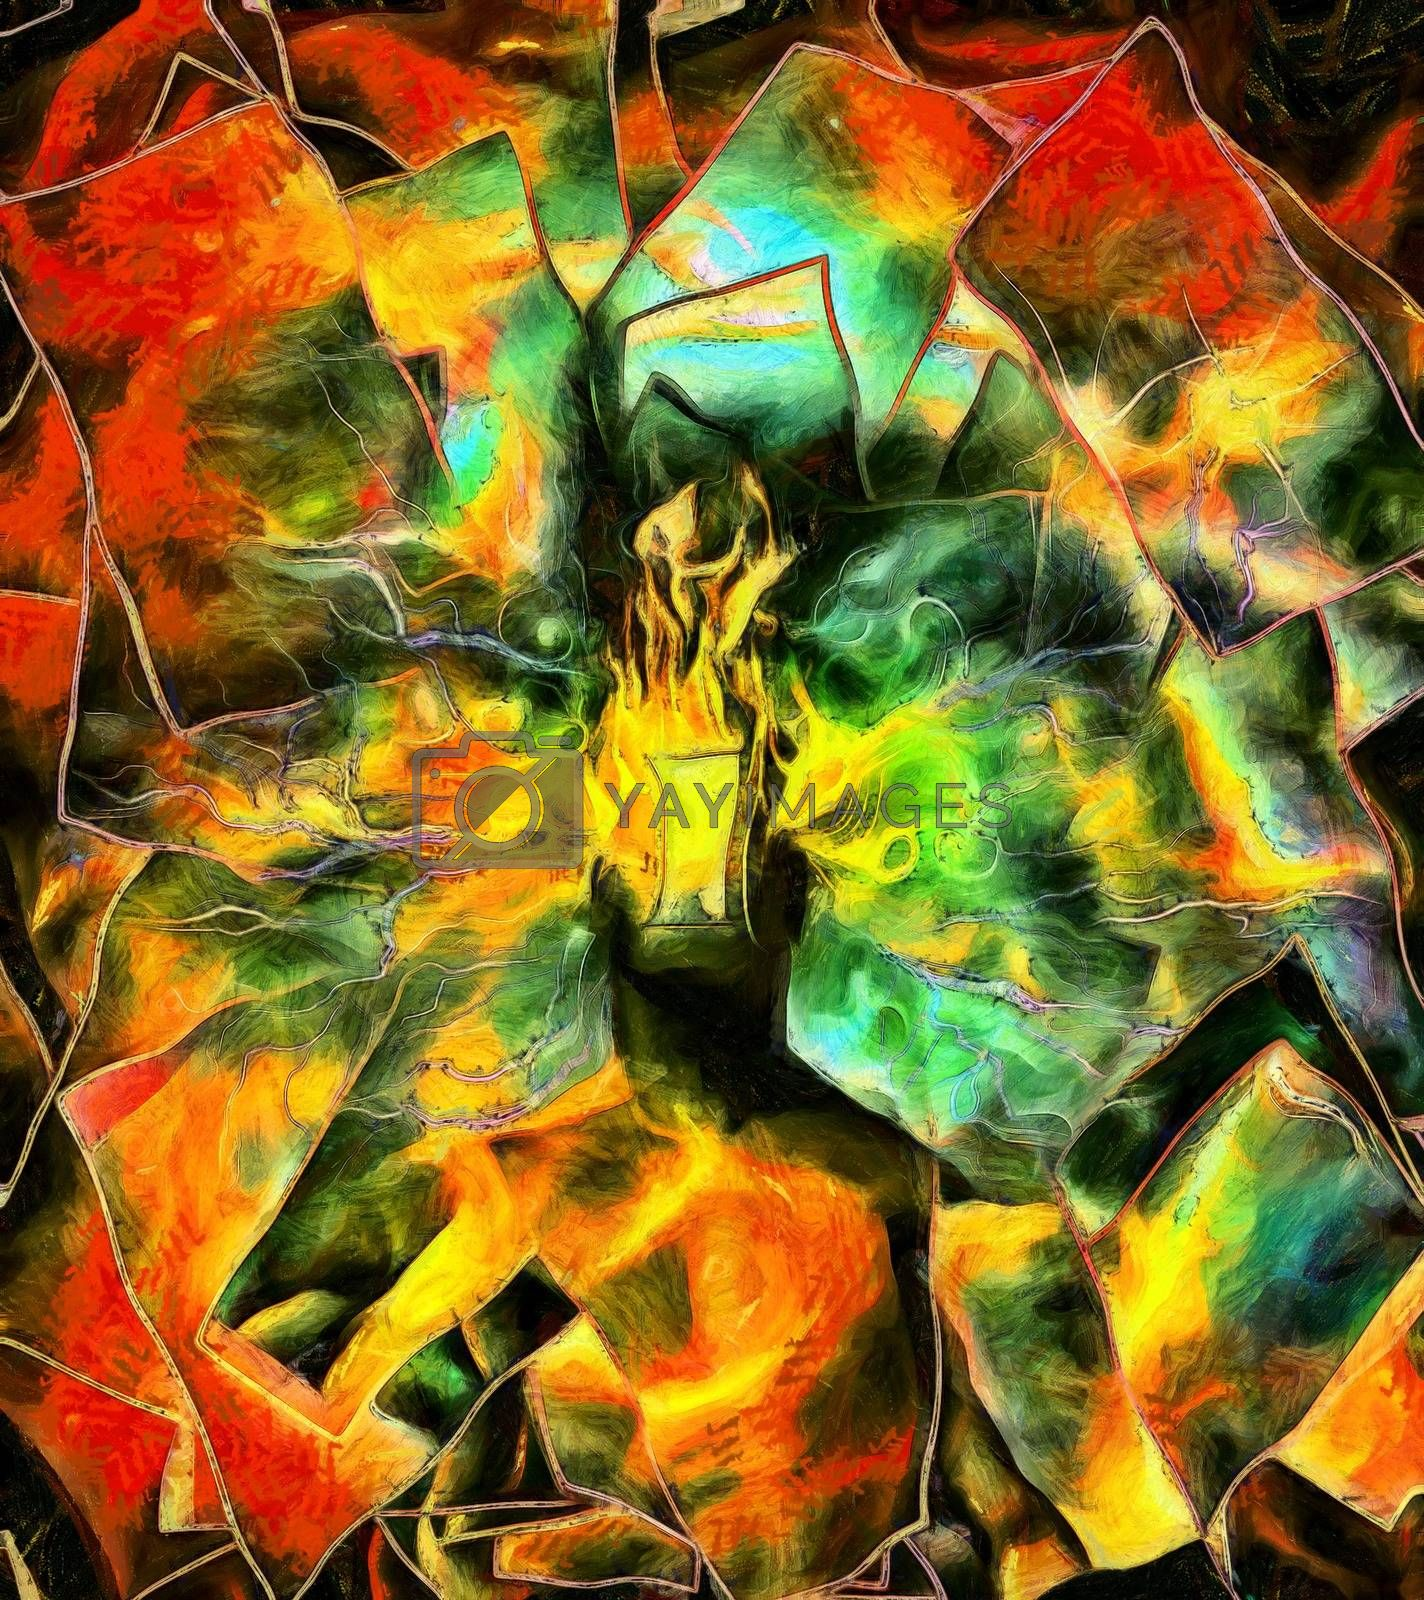 Surreal painting. Man with burning head and door instead of face. 3D rendering